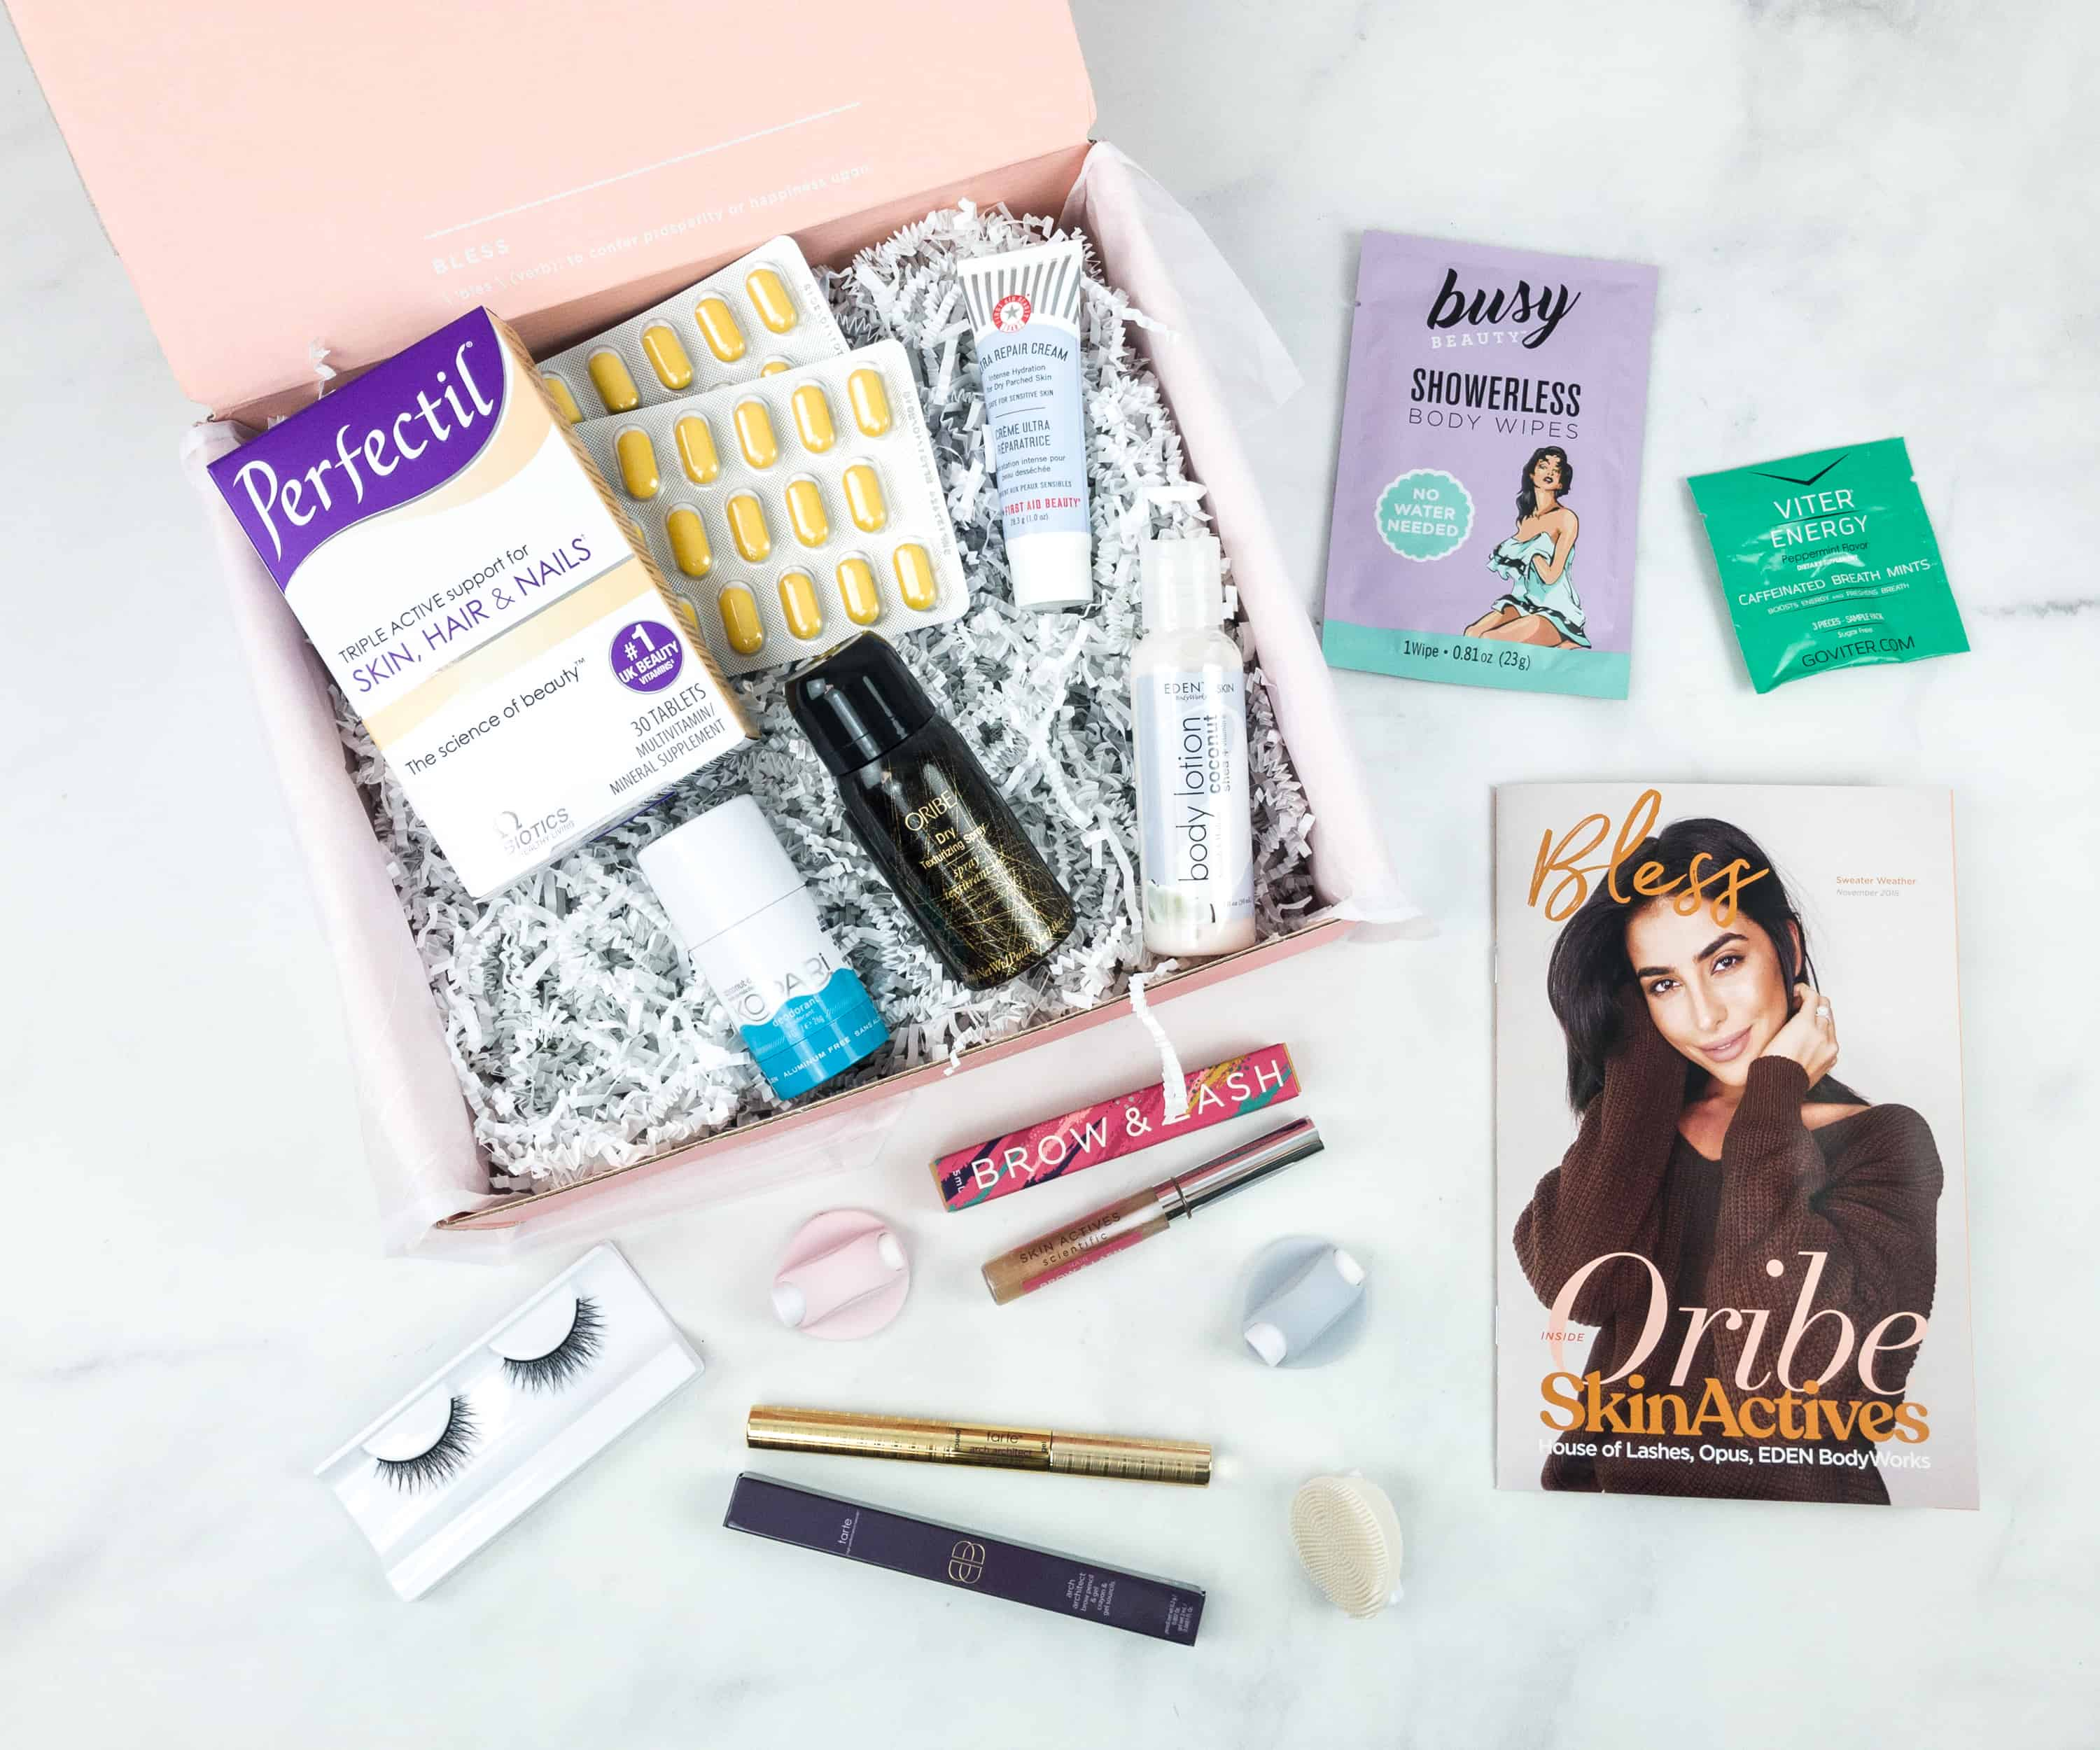 Bless Box November 2018 Subscription Box Review & Coupon